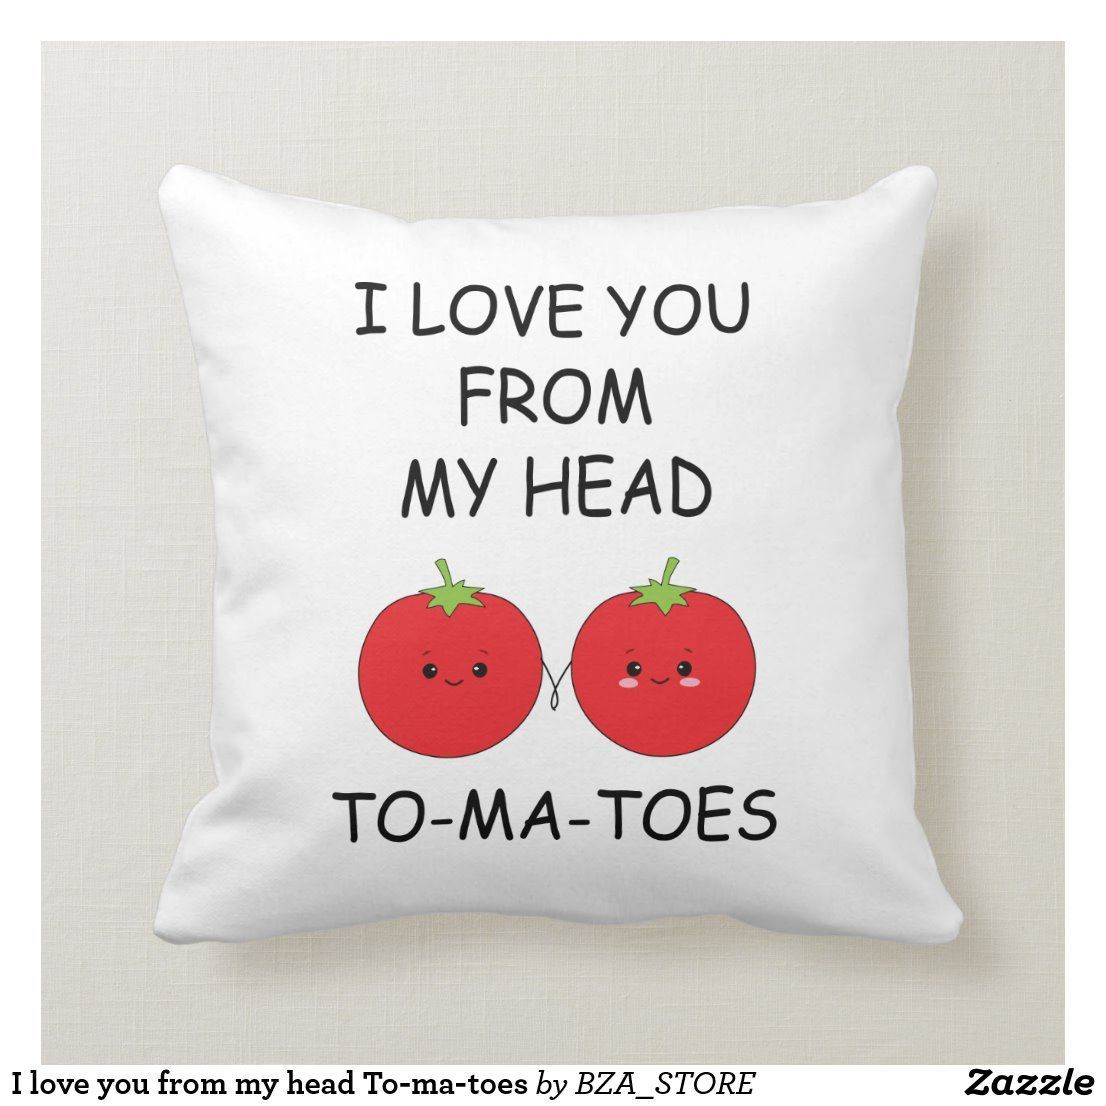 I love you from my head To-ma-toes Throw Pillow - Girlfriend Gifts